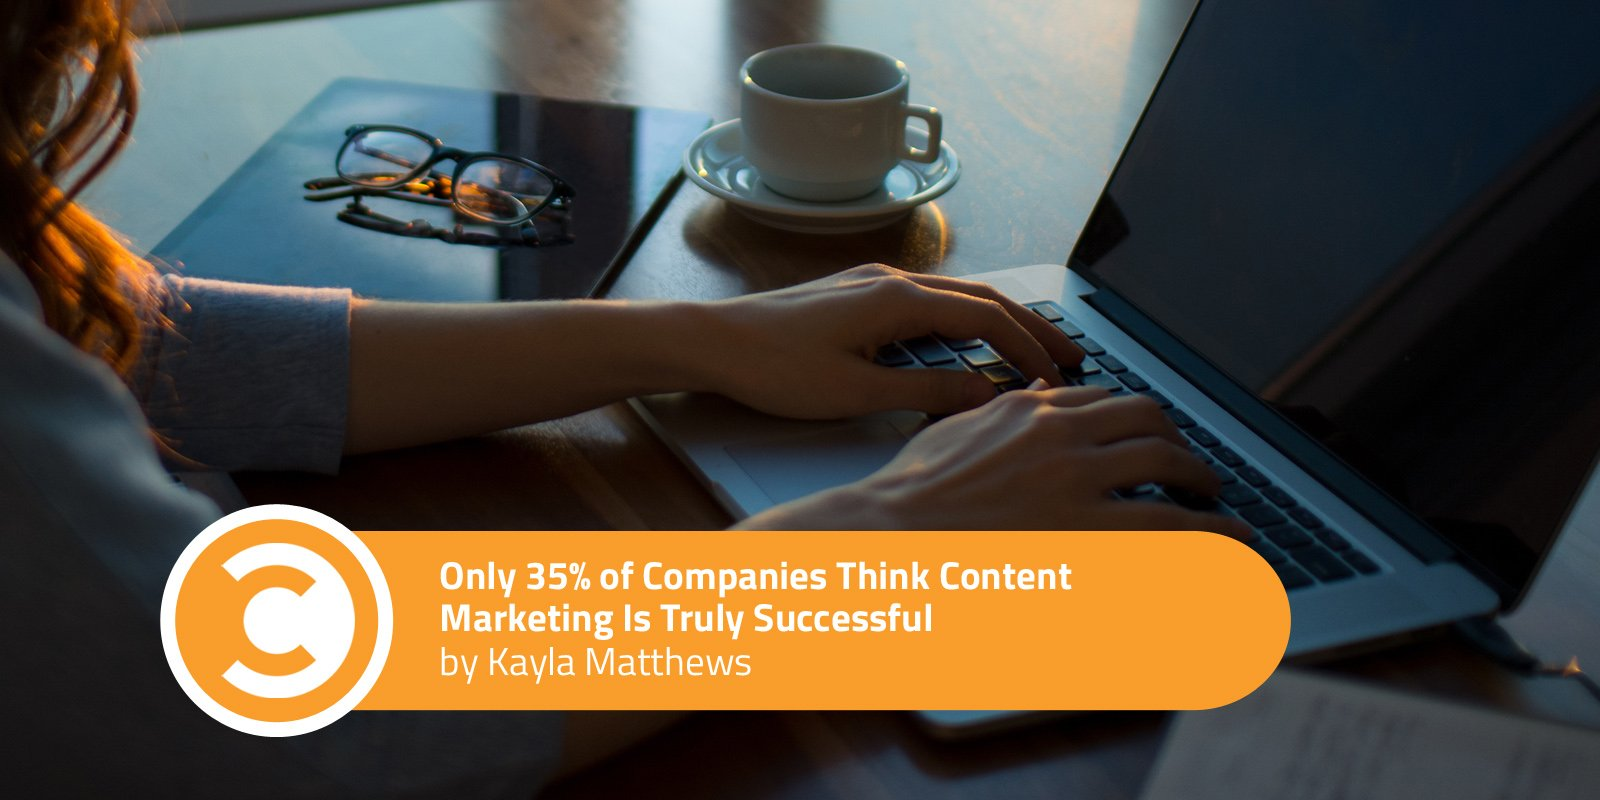 Only 35 Percent of Companies Think Content Marketing Is Truly Successful